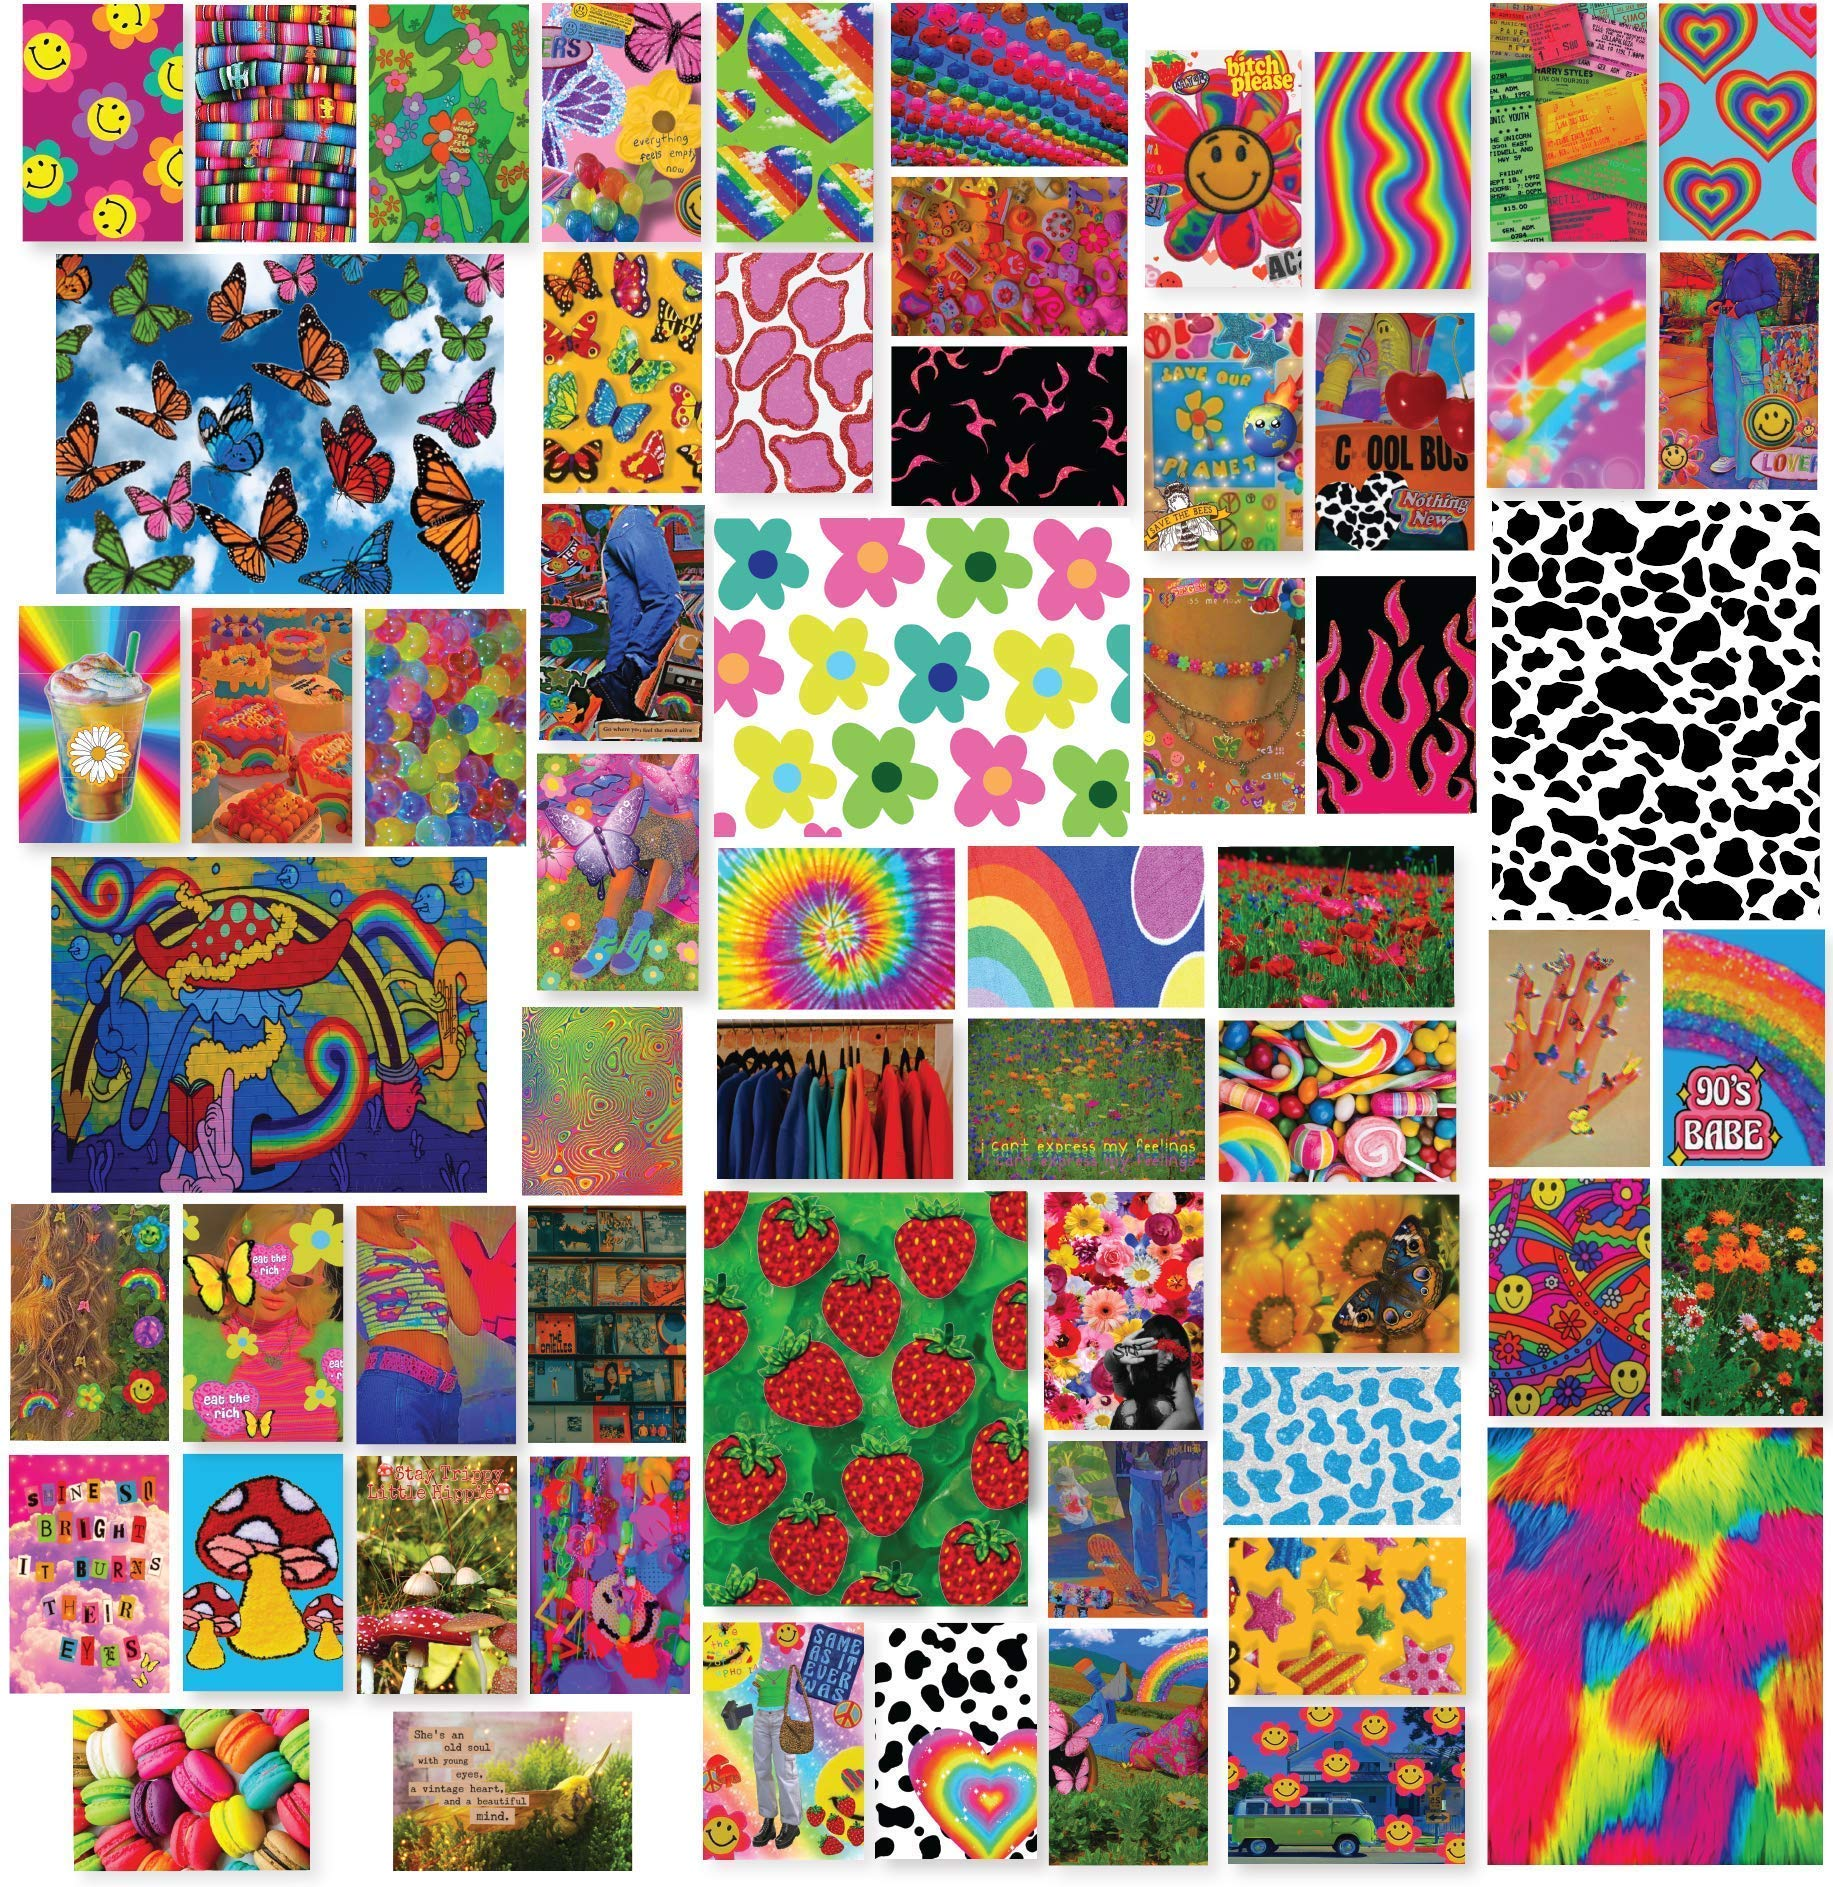 Indie Room Decor Aesthetic Collage Kit for Wall - Covers 15 Square Feet - Unique Indie Room Decor for Bedroom - Six Posters and 54 4x6 Inch Images - Indie Posters for Room Aesthetic